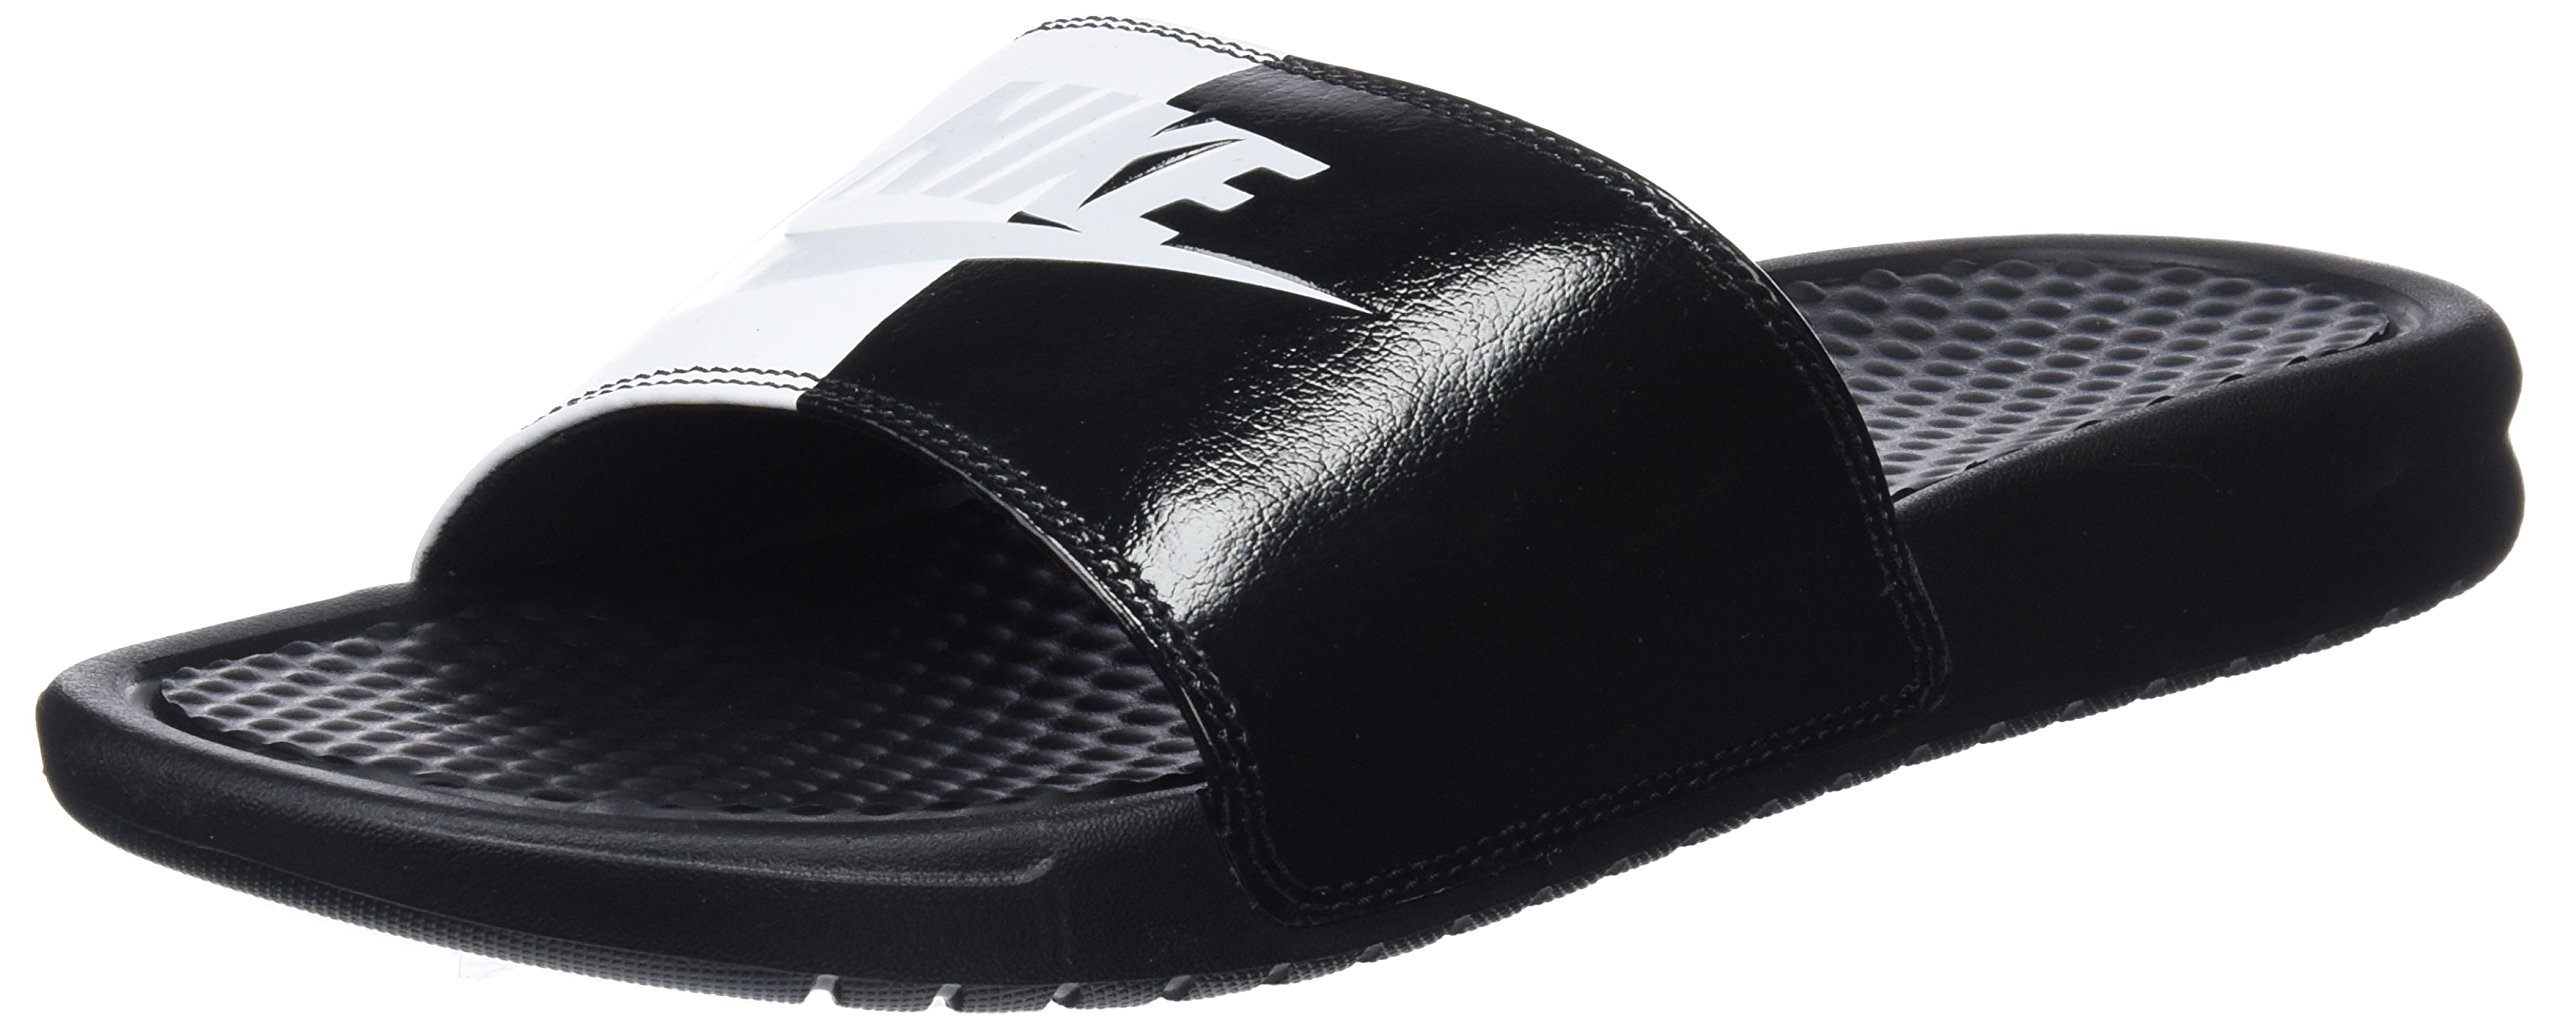 NIKE Men's Benassi Just Do It Sandal Black/Pure Platinum-Black-White, 10